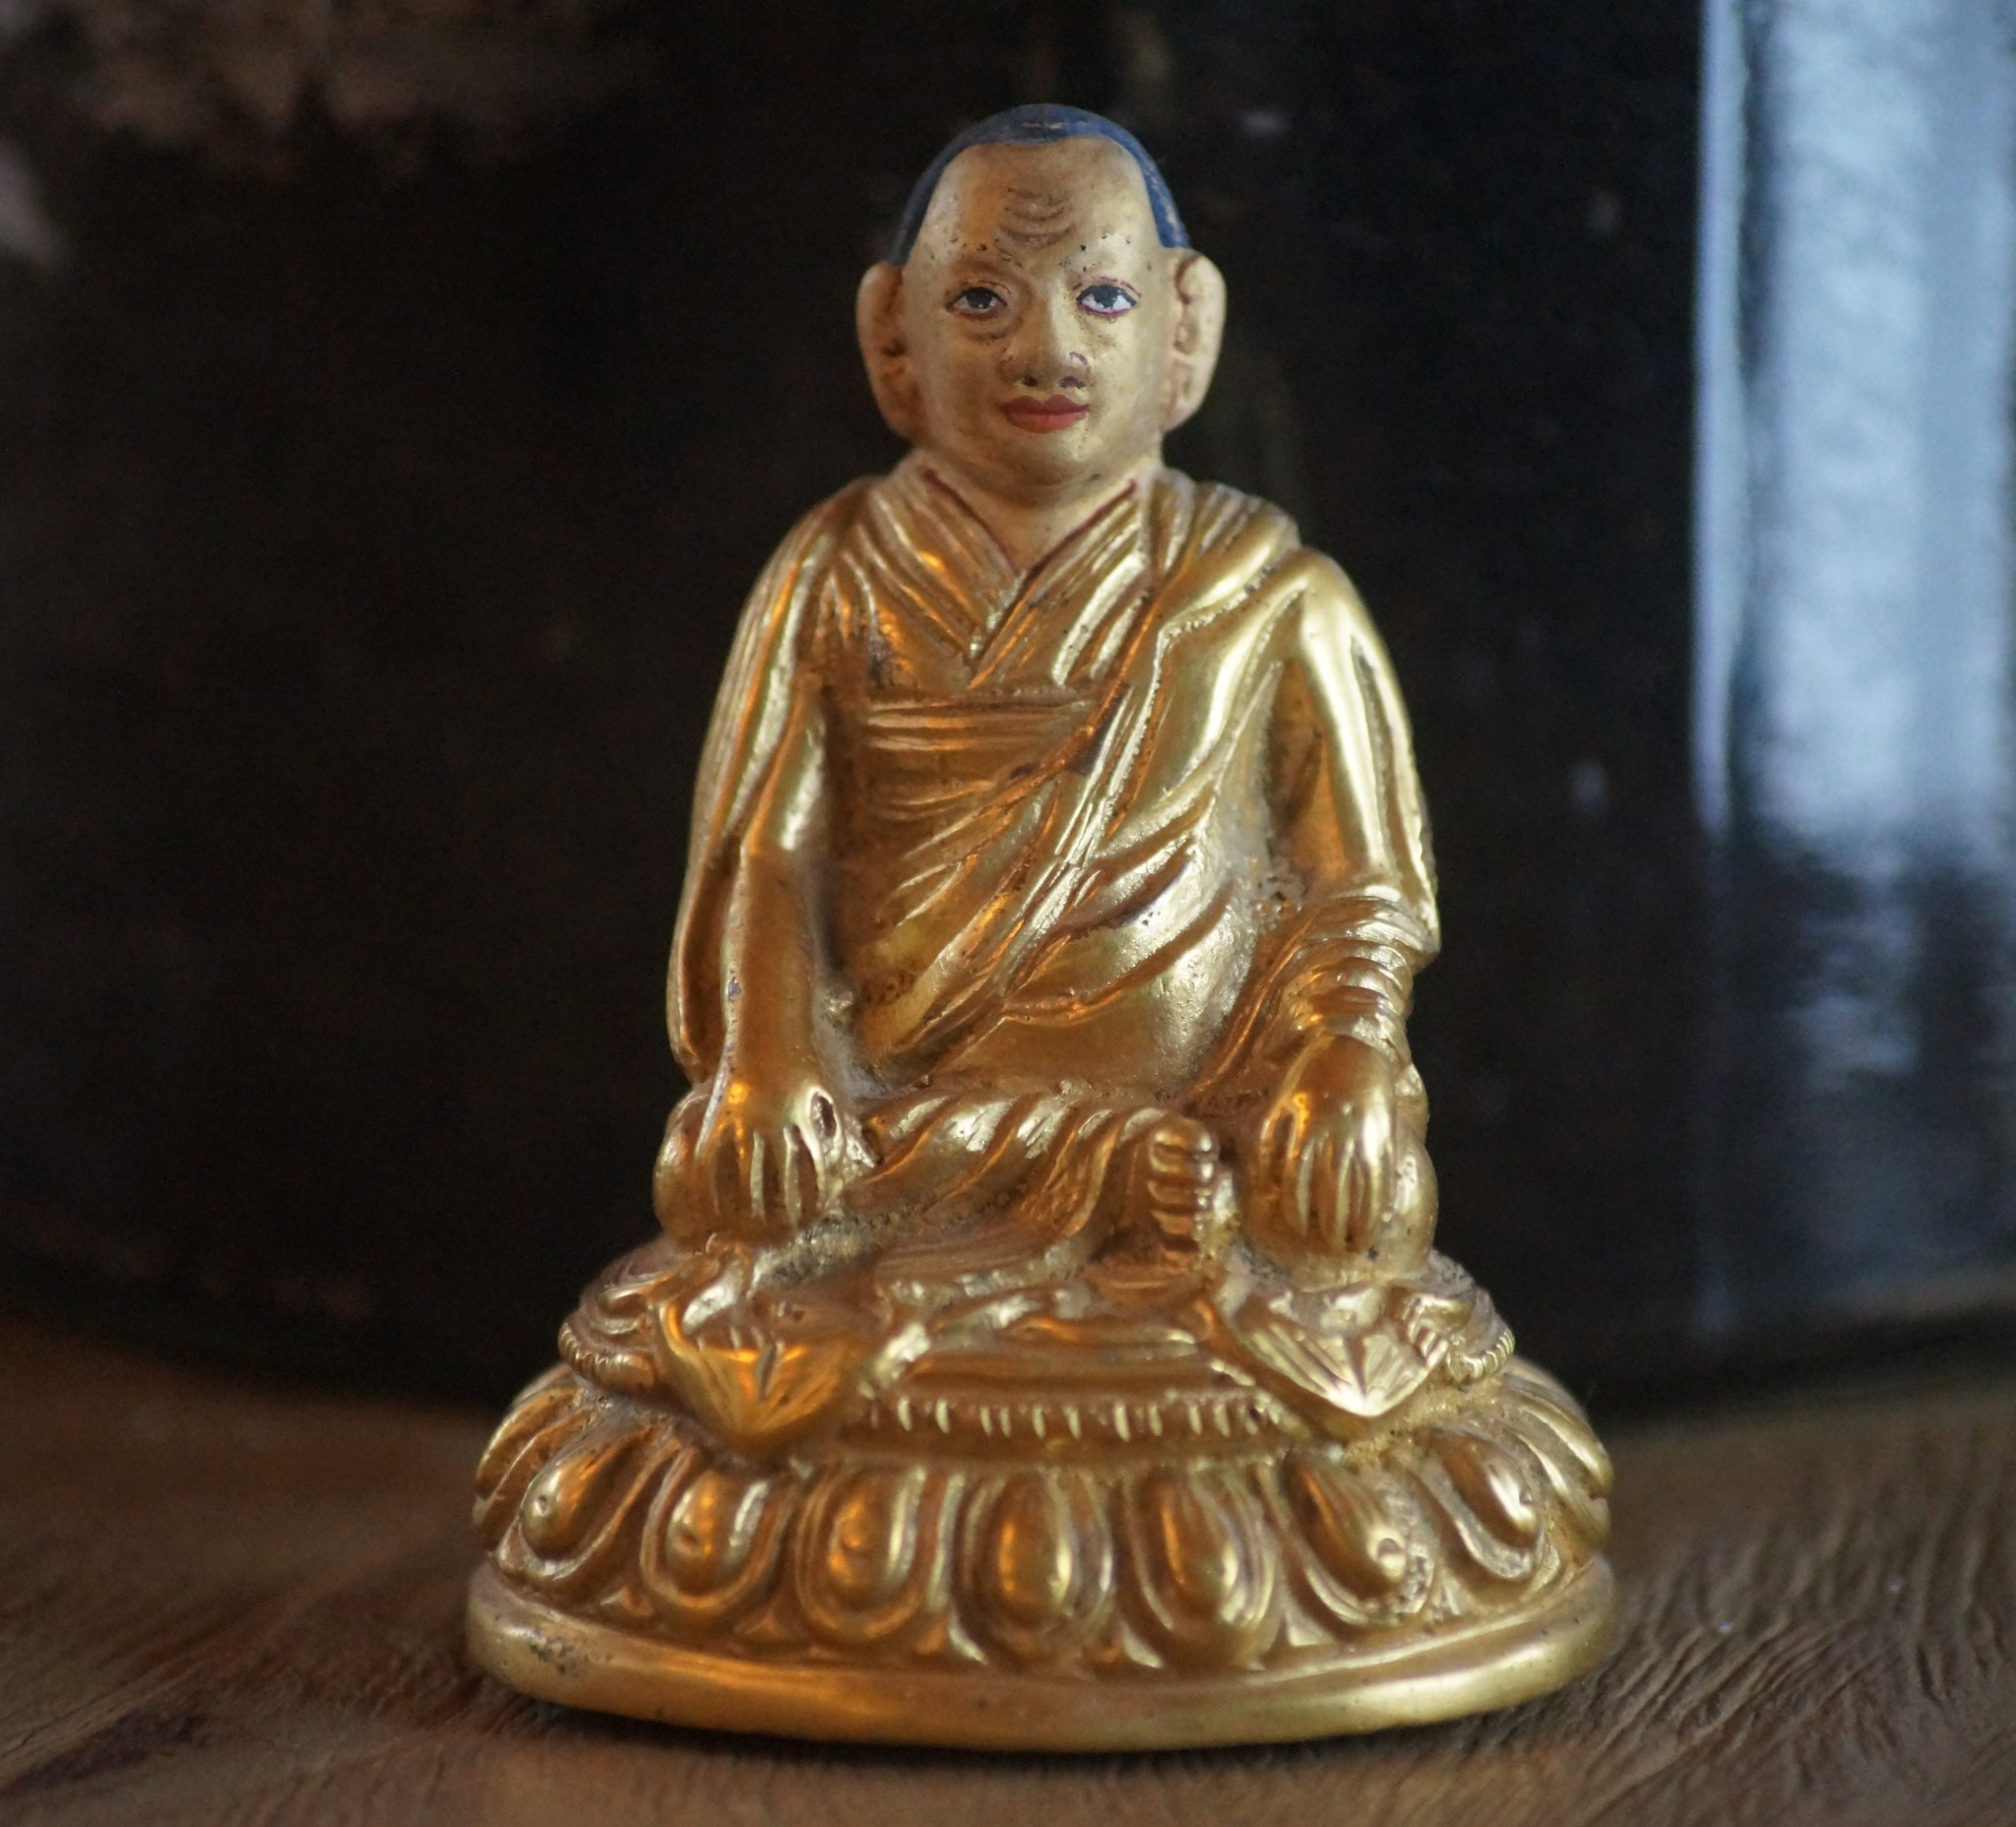 Longchenpa's likeness, reproduced by Nyoshul Khen Rinpoche and covered in gold.